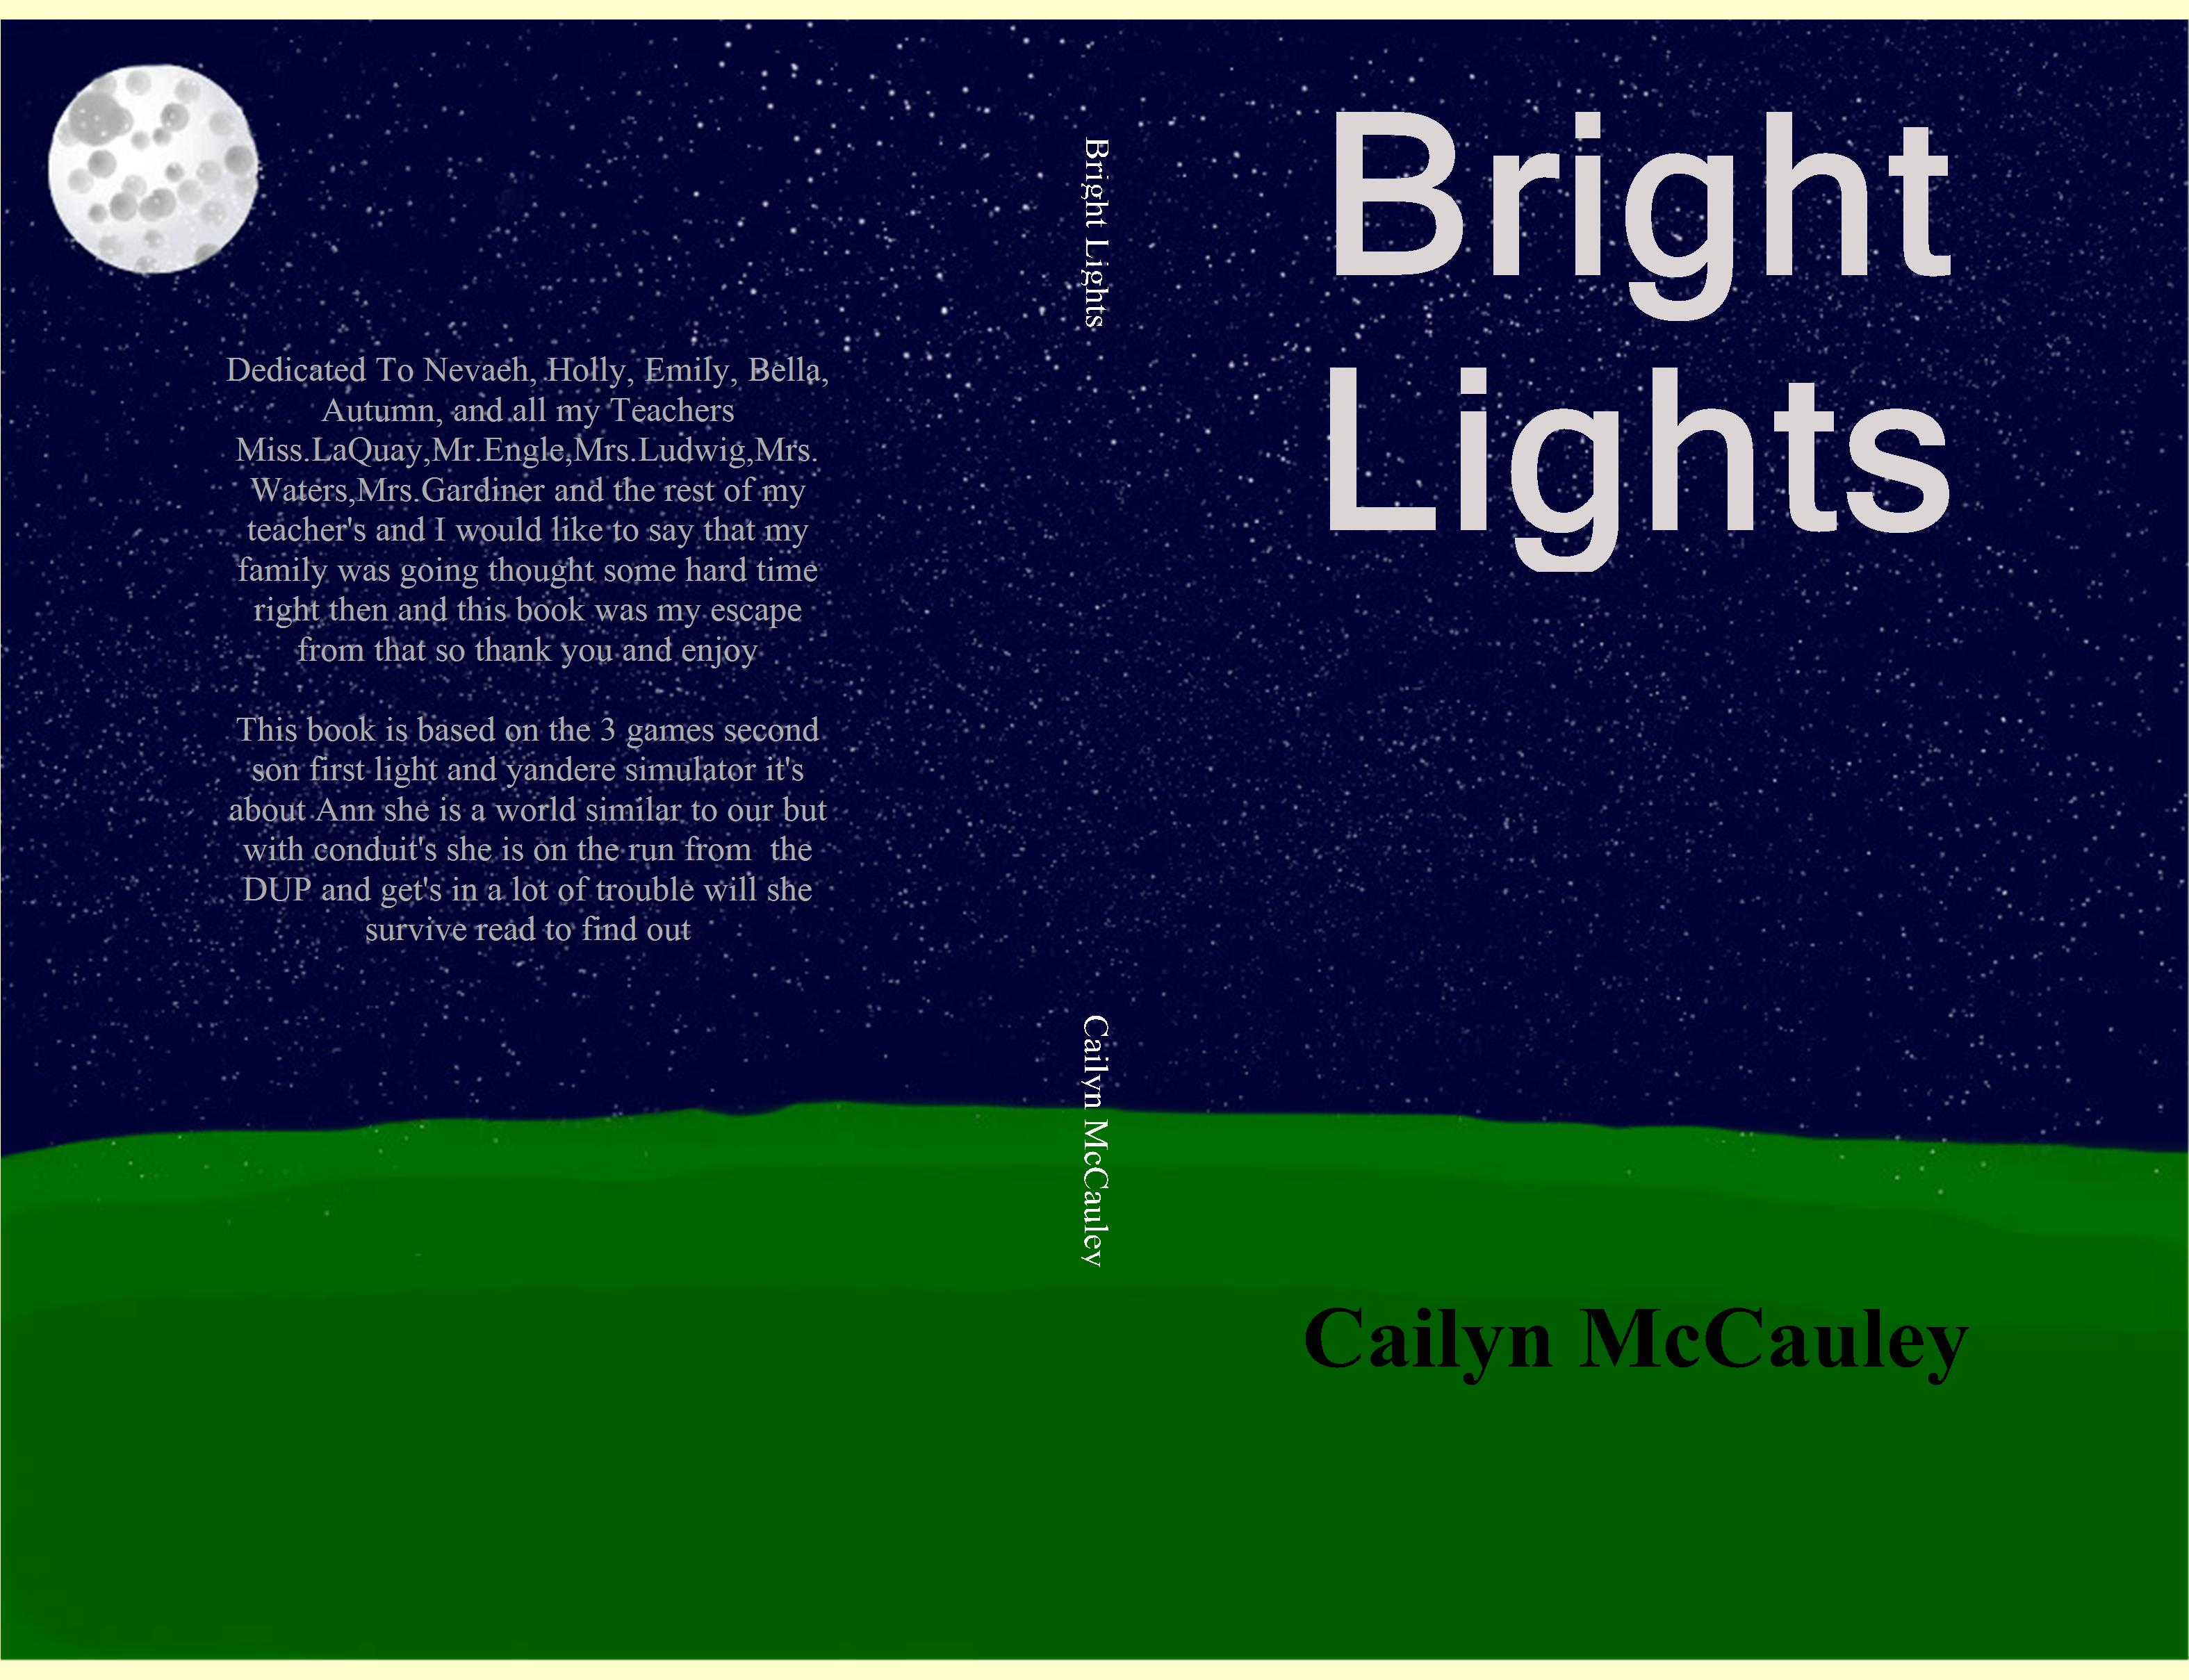 Bright Lights cover image